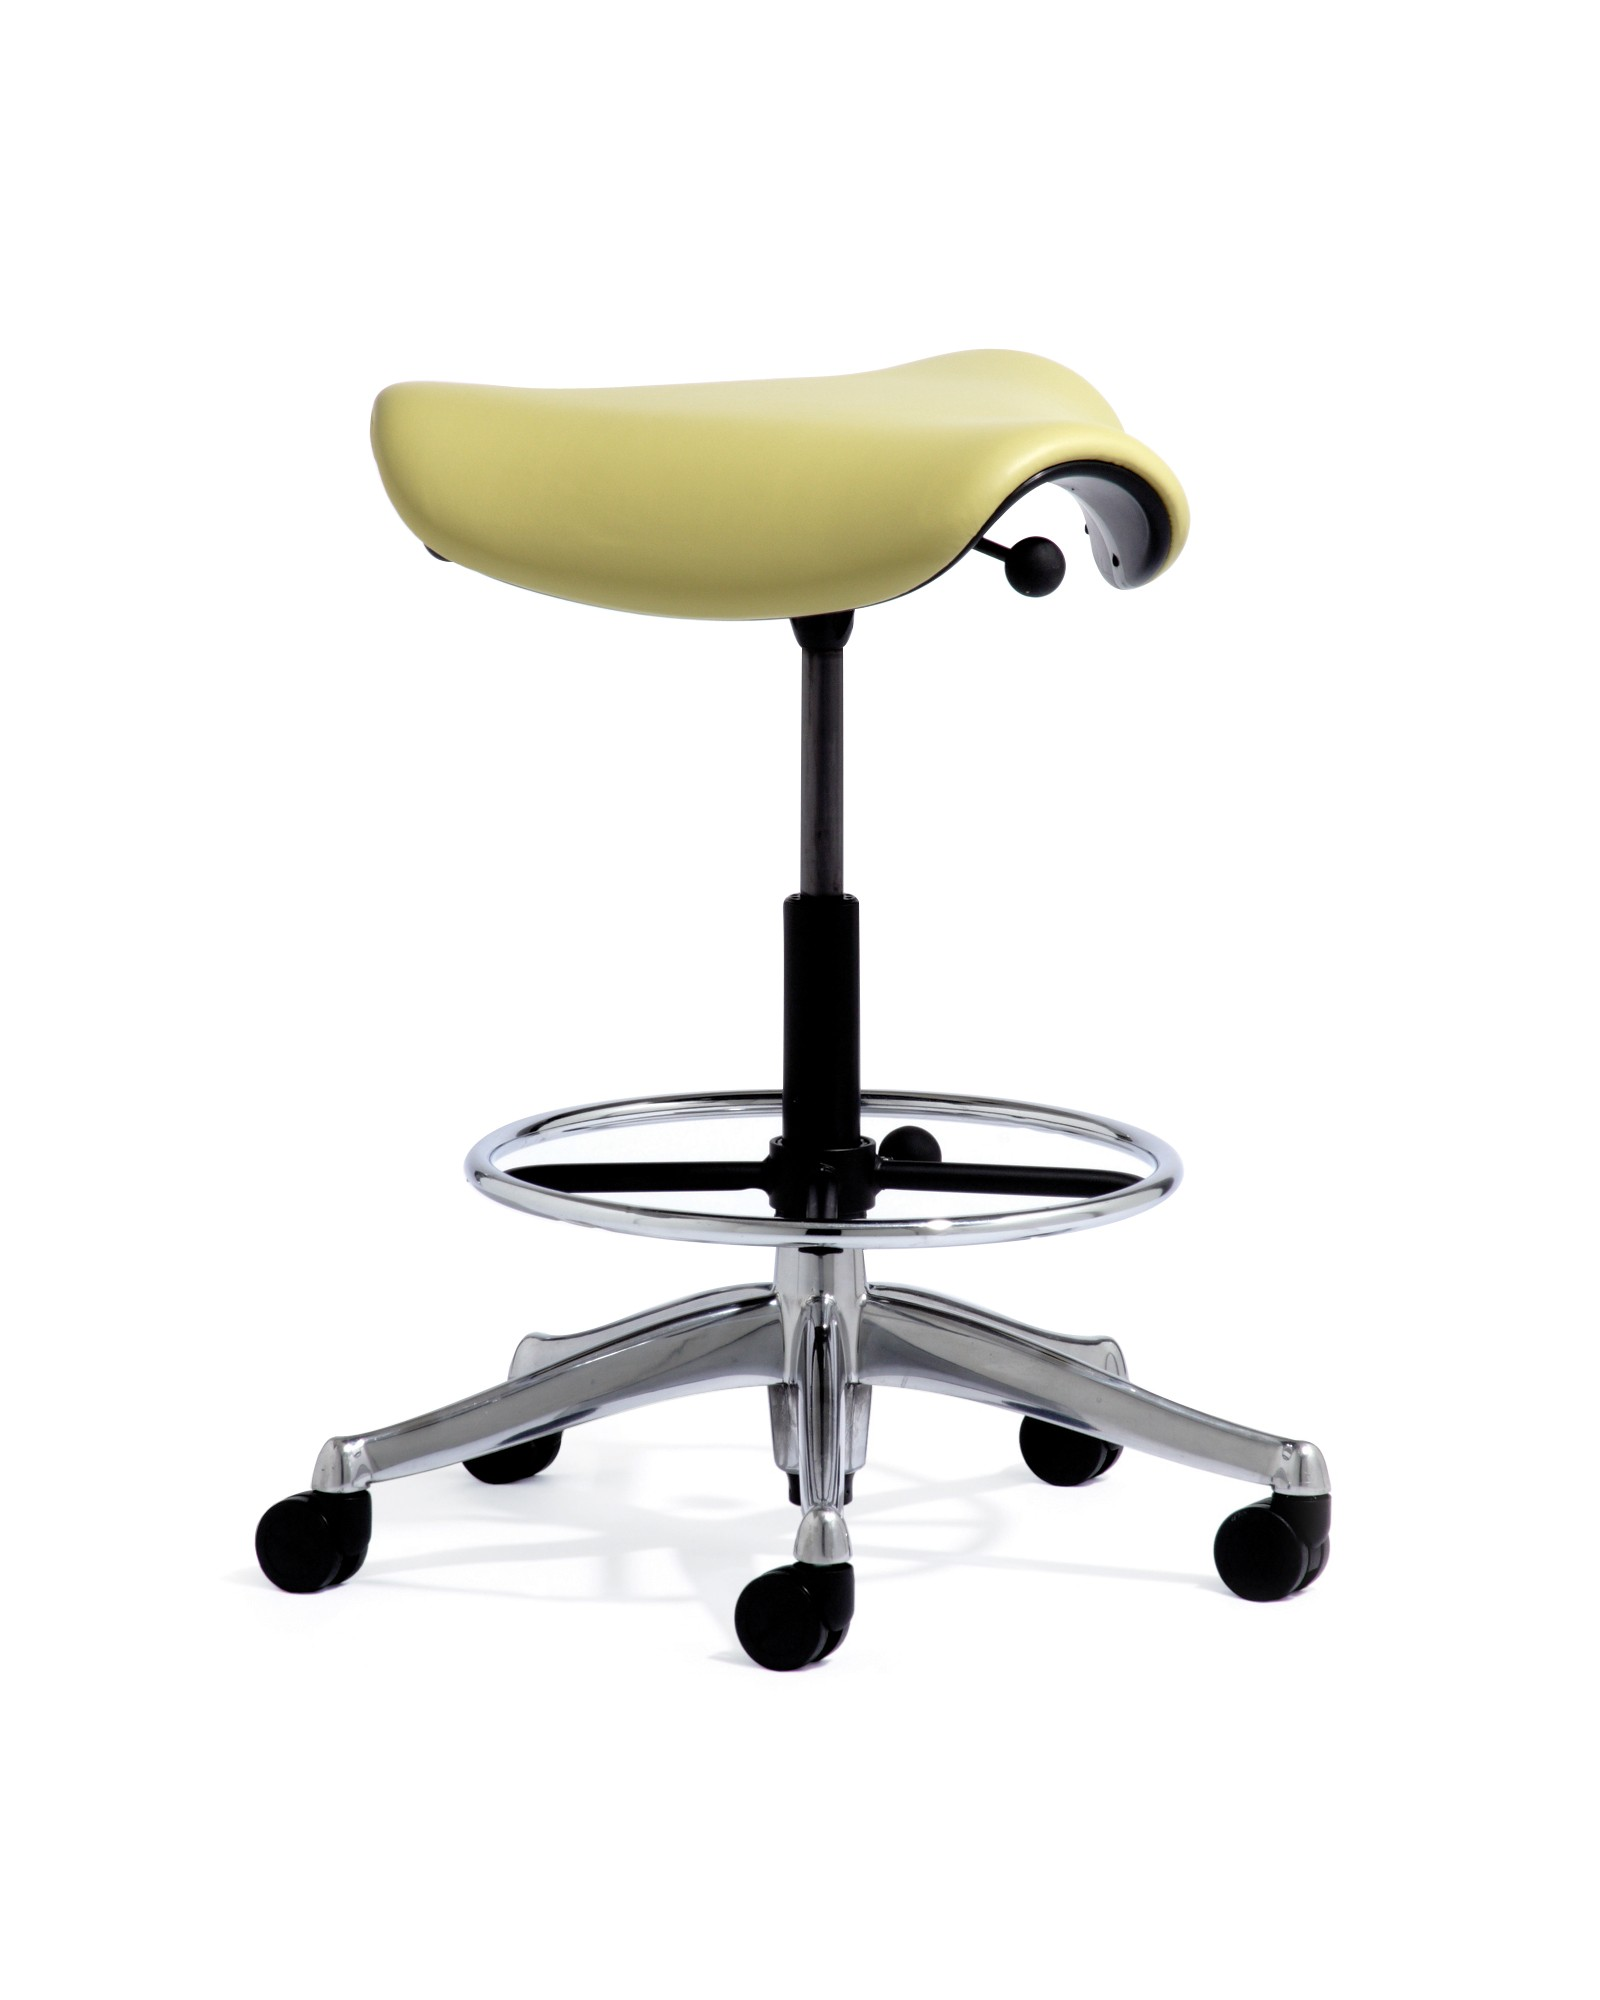 Humanscale Saddle Stool Biomorph Adjustable Computer